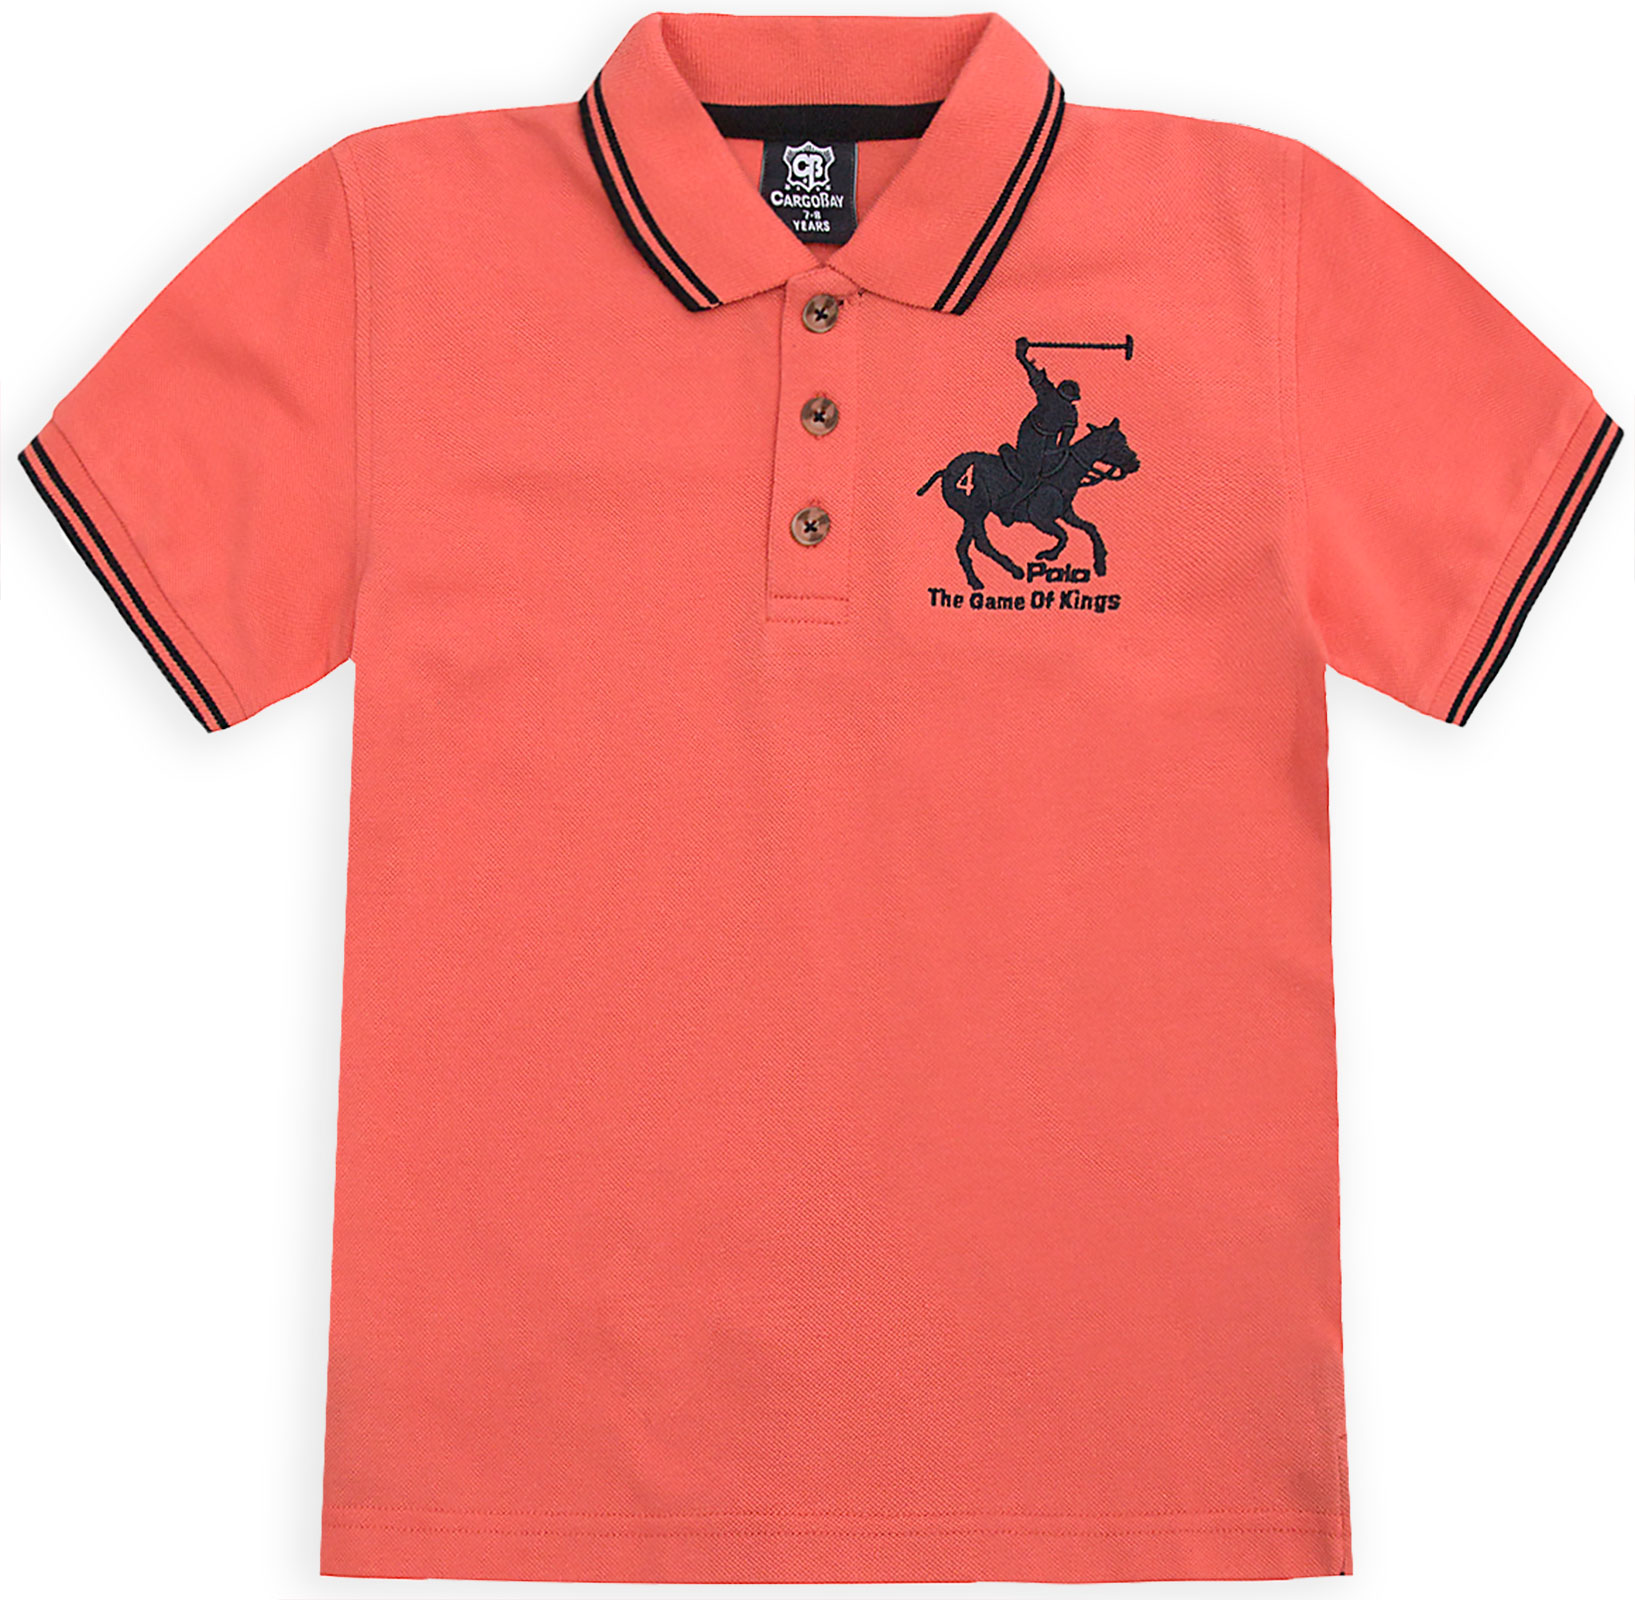 Boys-T-Shirt-Horse-Embroidery-Polo-Cotton-Top-Age-2-3-4-5-6-7-8-9-10-11-12-13-Yr thumbnail 9